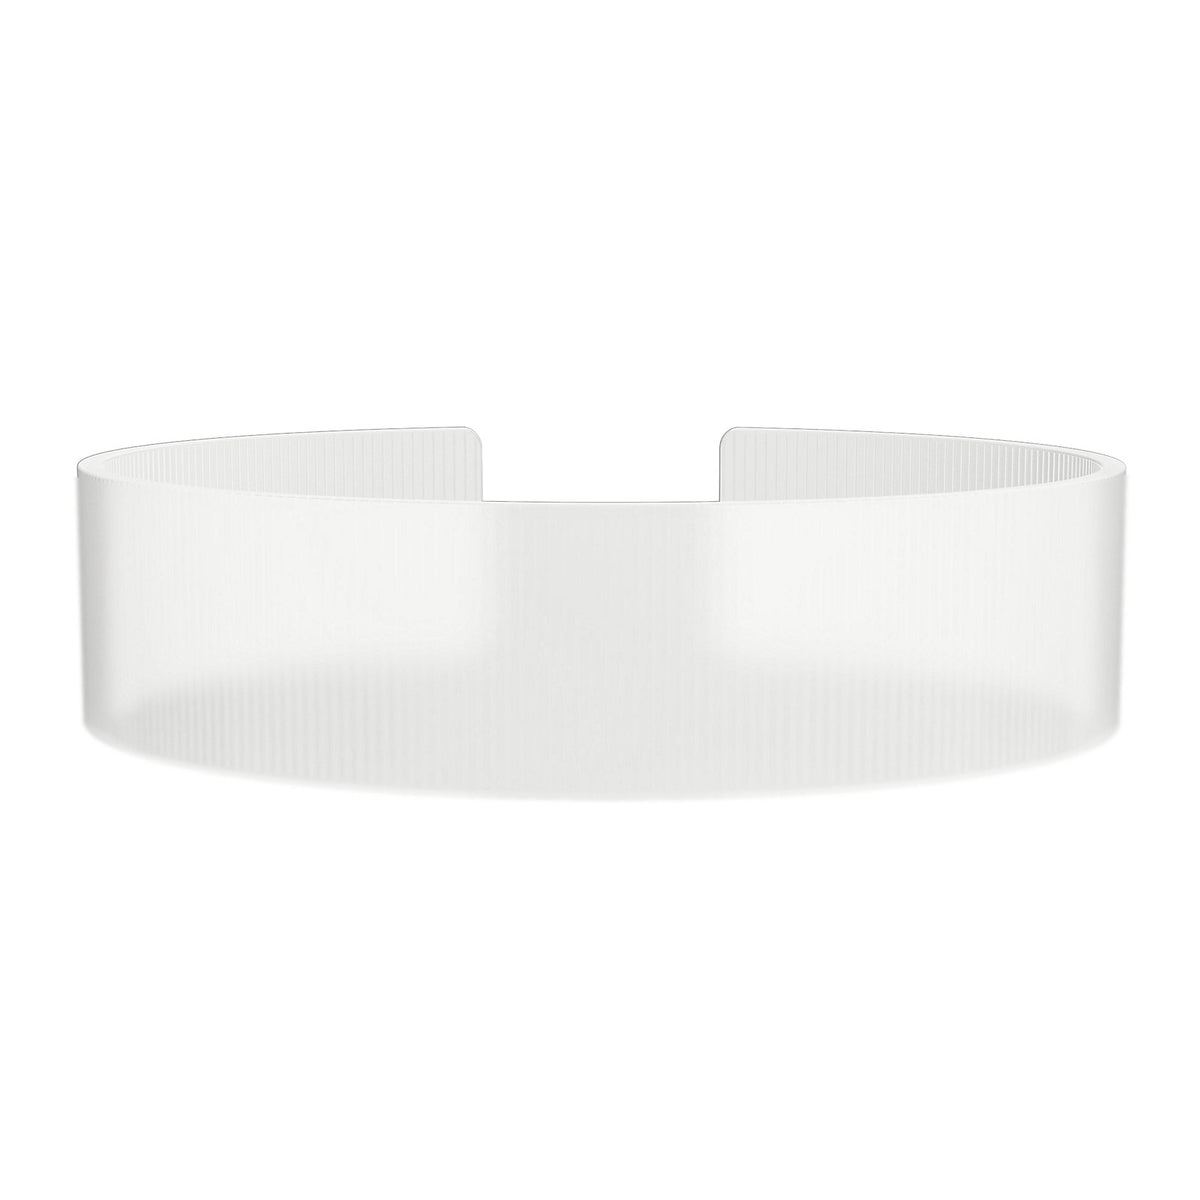 ROAD iD Replacement Band 19mm Clear Silicone Clasp